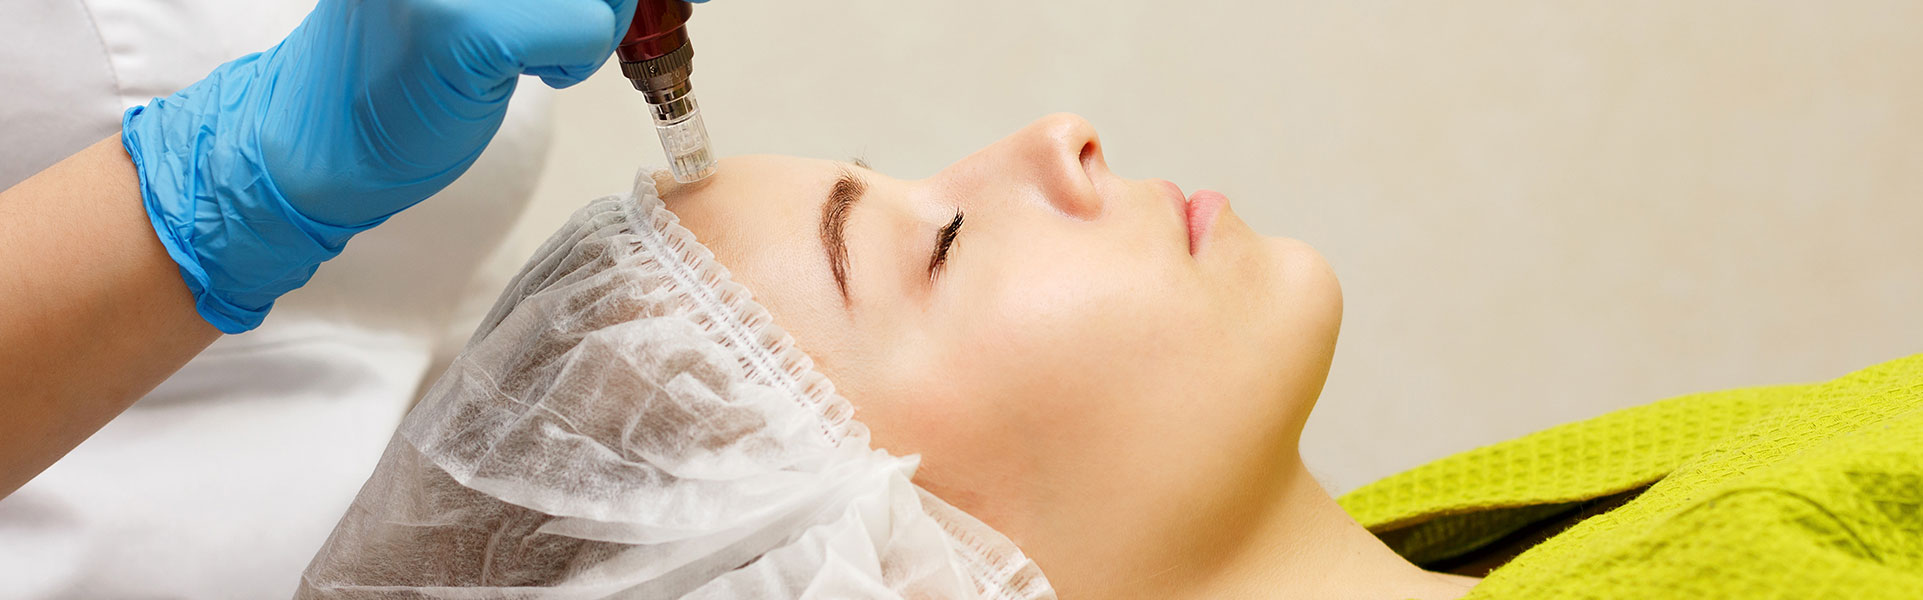 February Specials: Chemical Peel with Cocktail for only $50 ($25 savings)